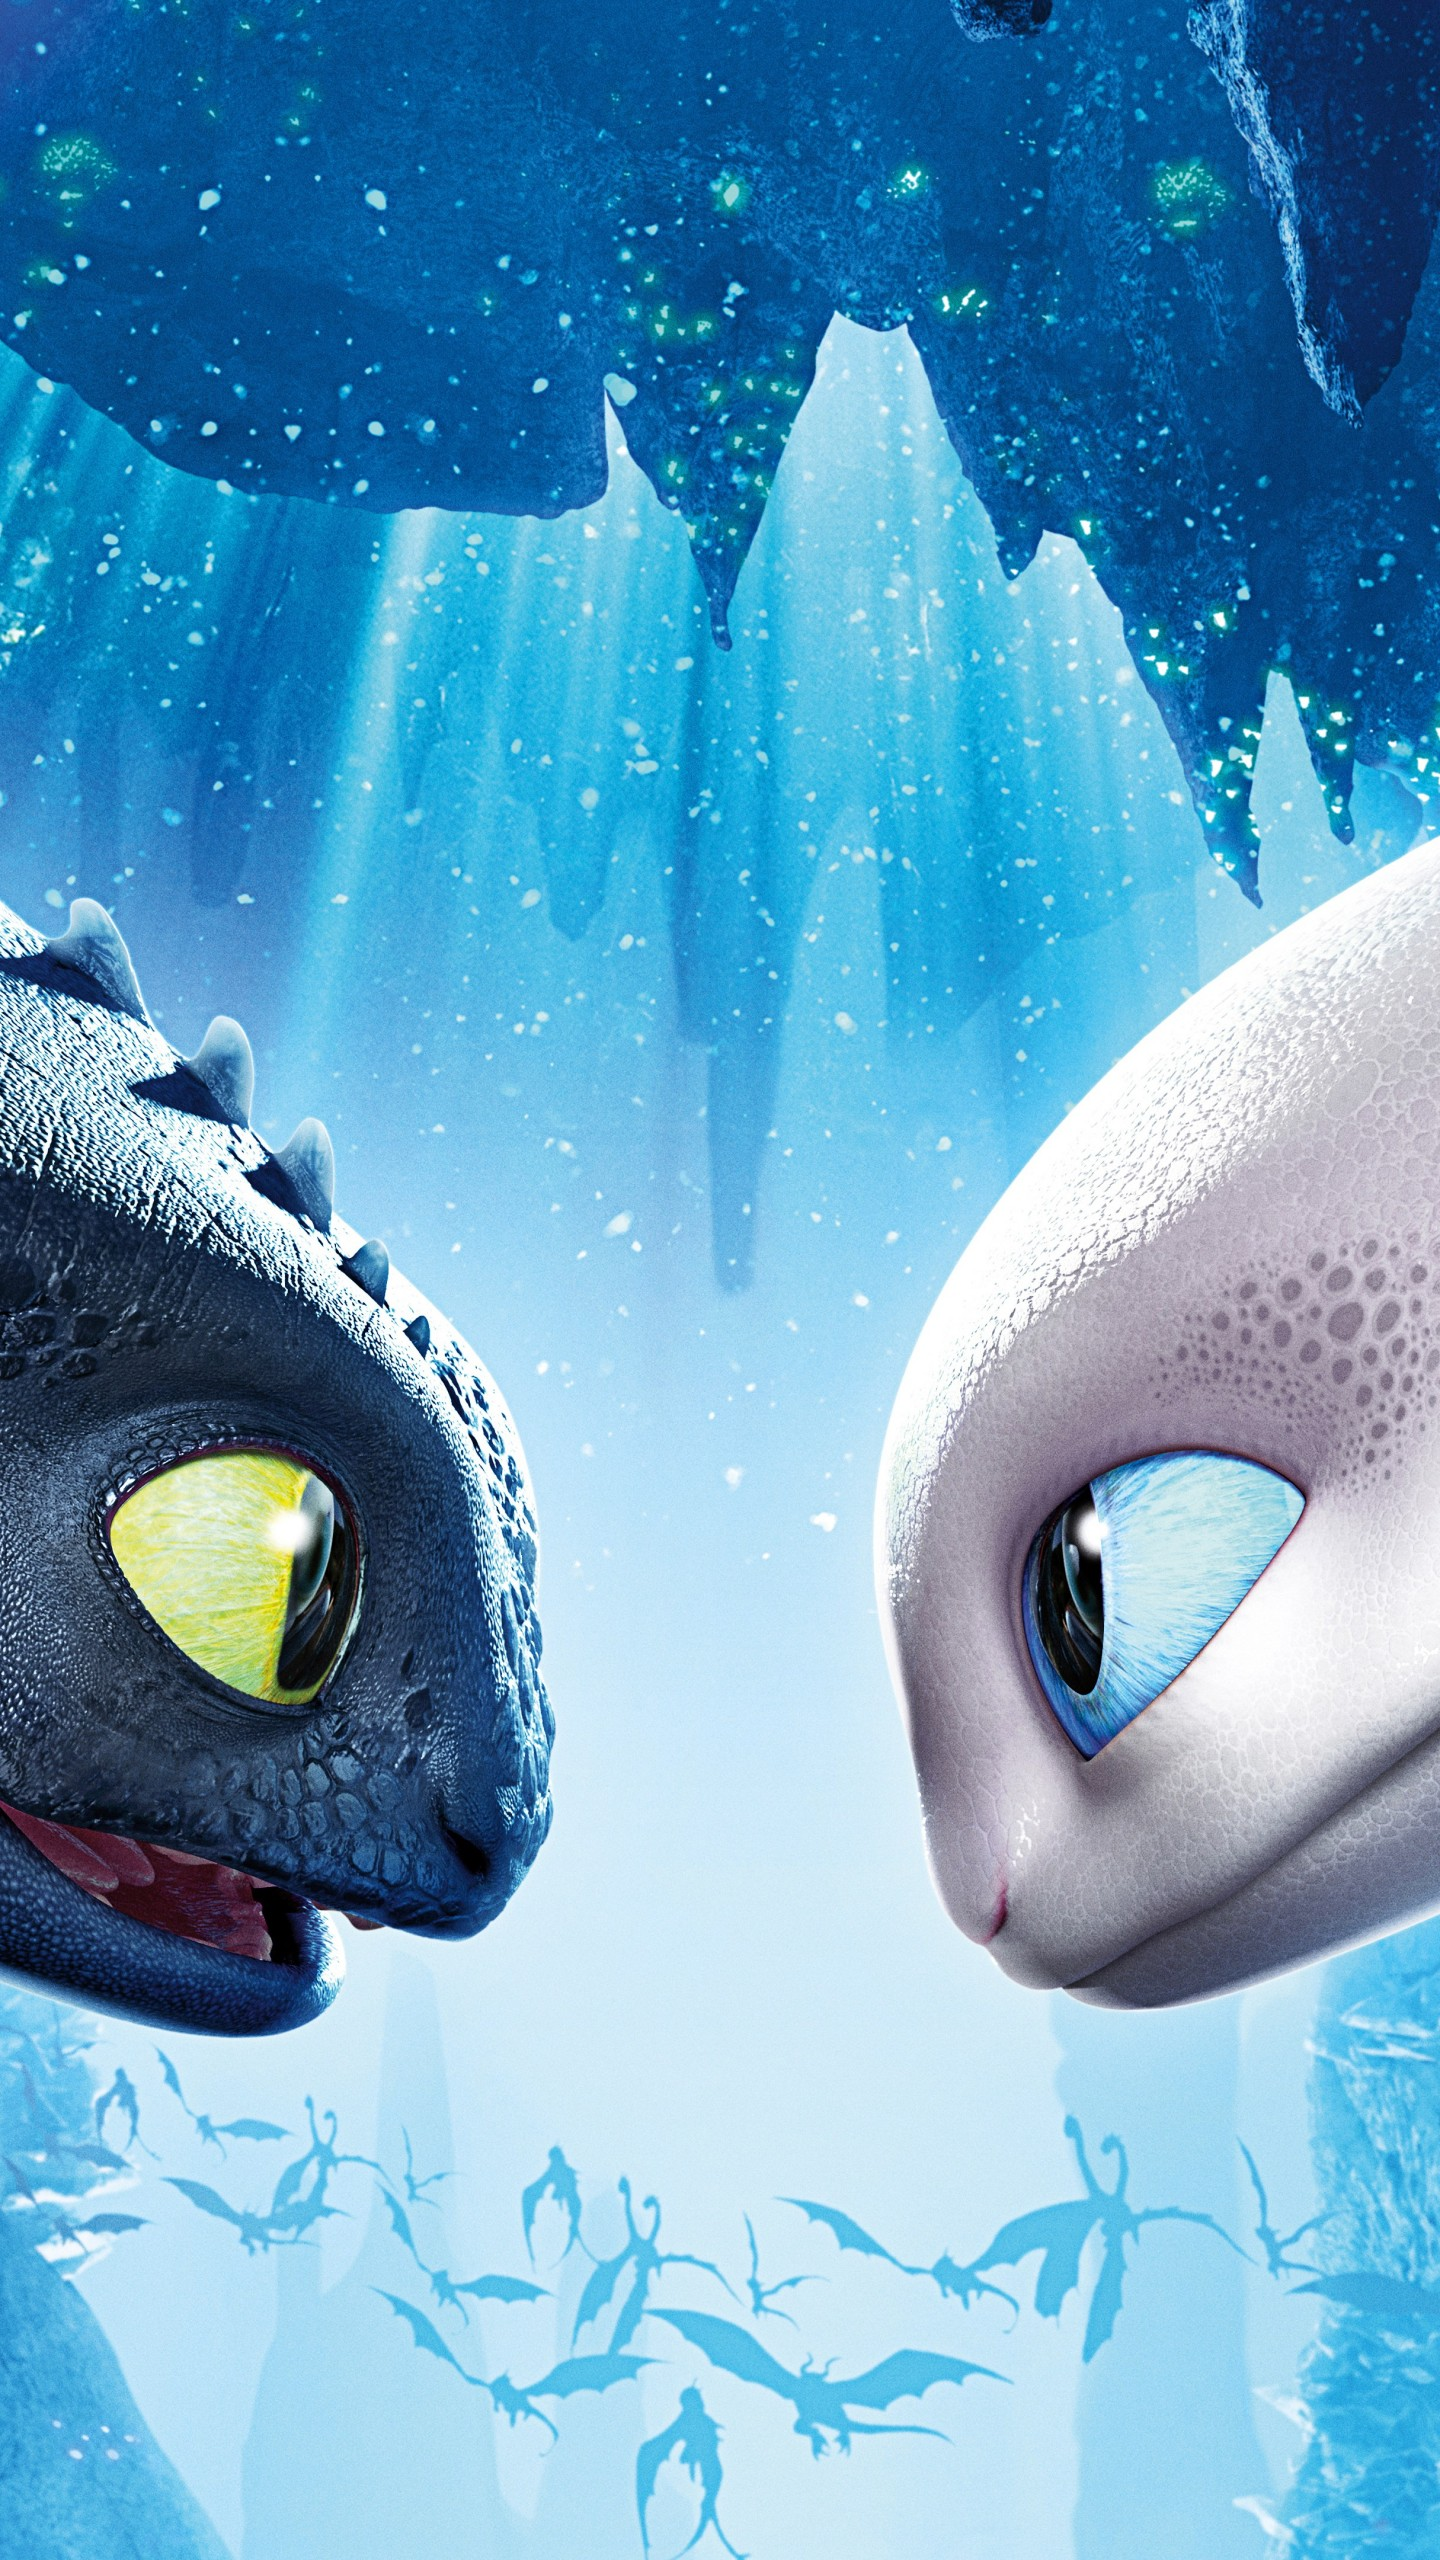 Wallpaper How to Train Your Dragon: The Hidden World ...